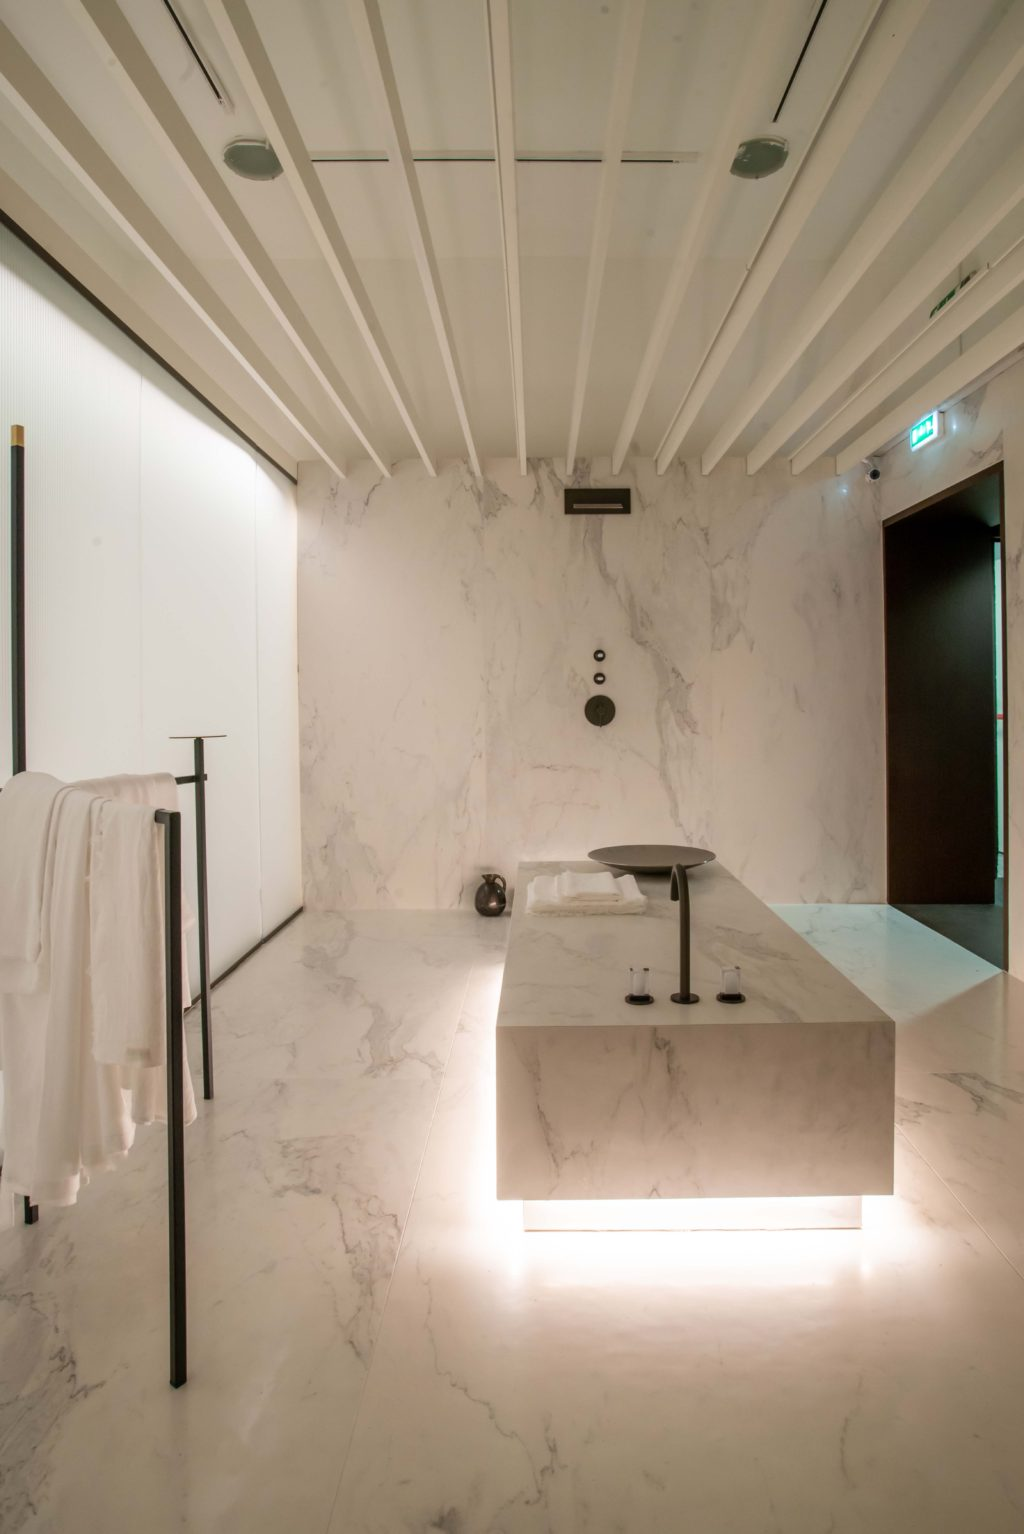 Grand Hotel 2019 by Elle Decor. Design therapy by Matteo Thun & Partners